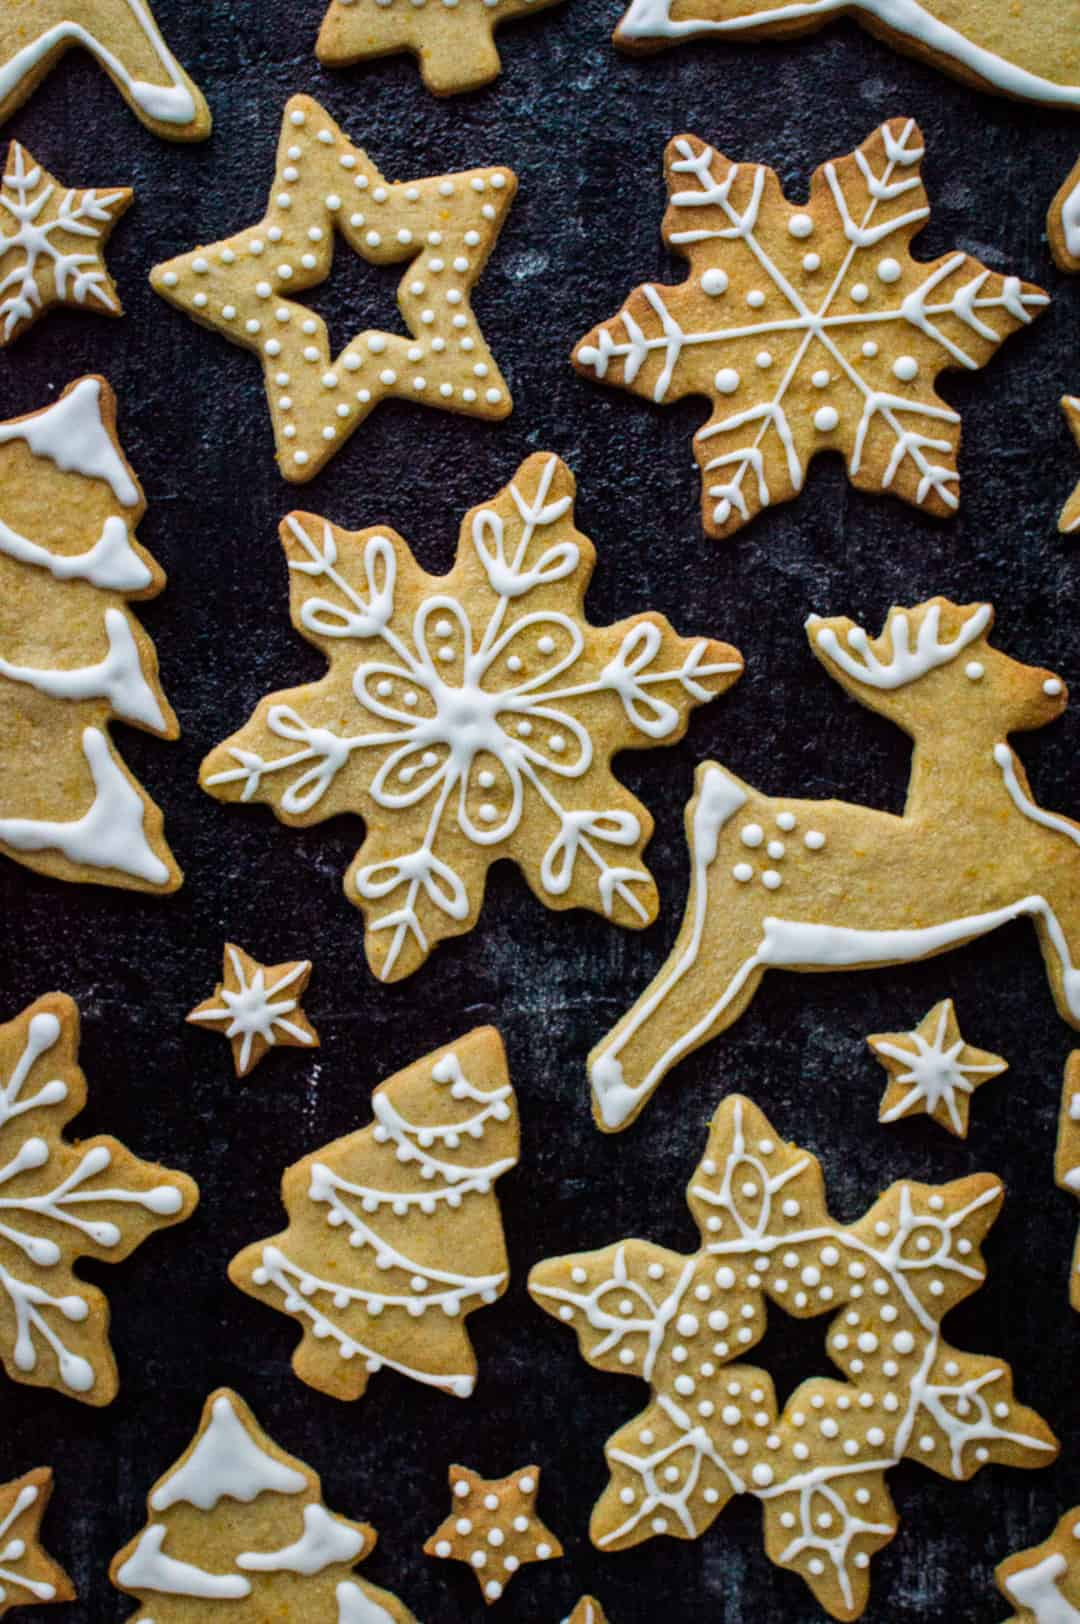 Orange and cinnamon butter cookies in reindeer, christmas tree, snowflake and star designs with white royal icing decorations